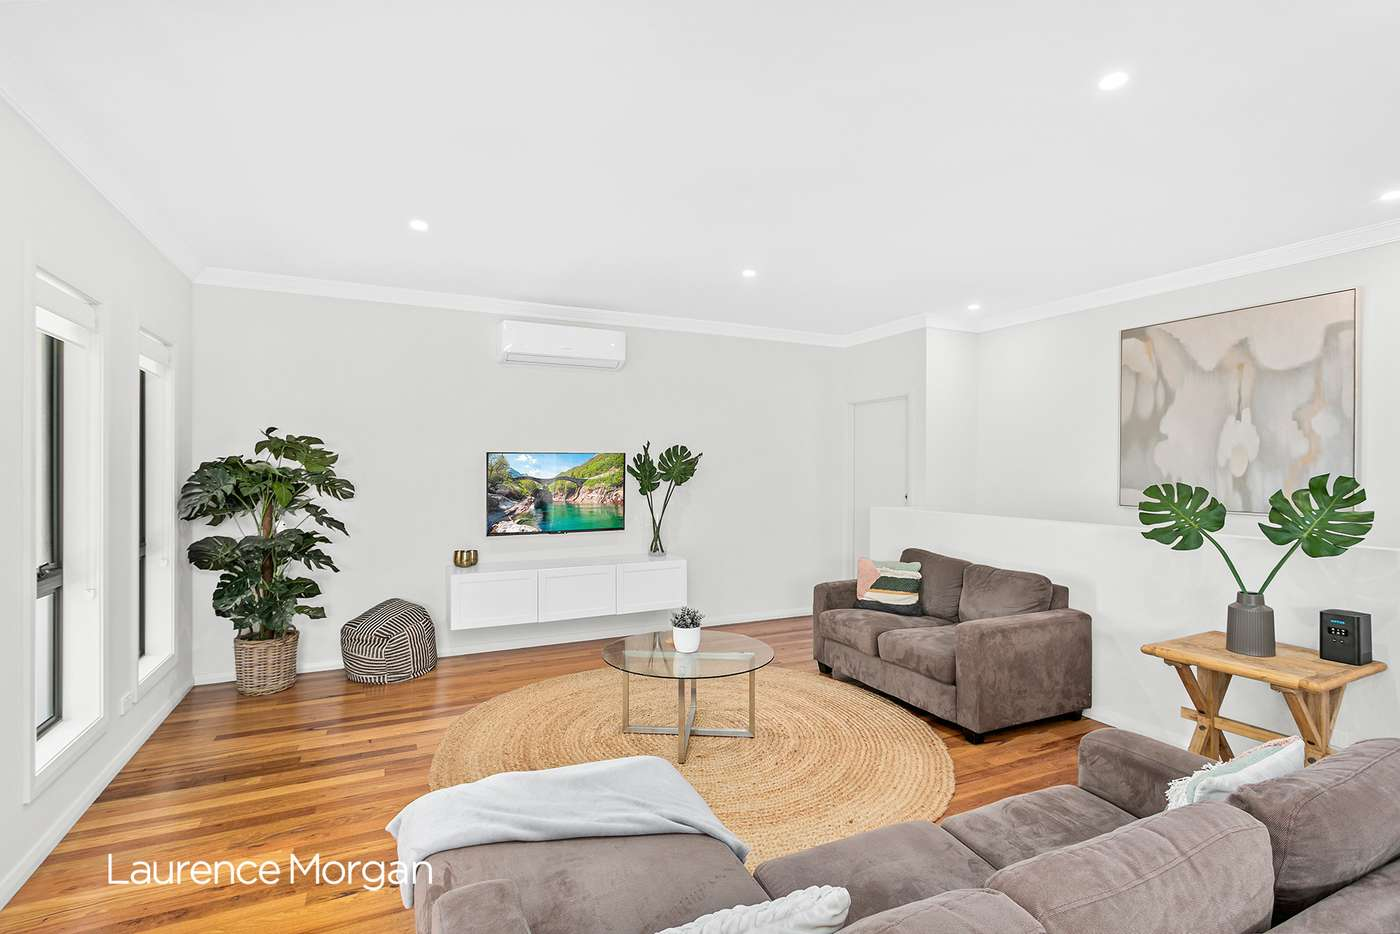 Sixth view of Homely house listing, 15 Binda Street, Keiraville NSW 2500